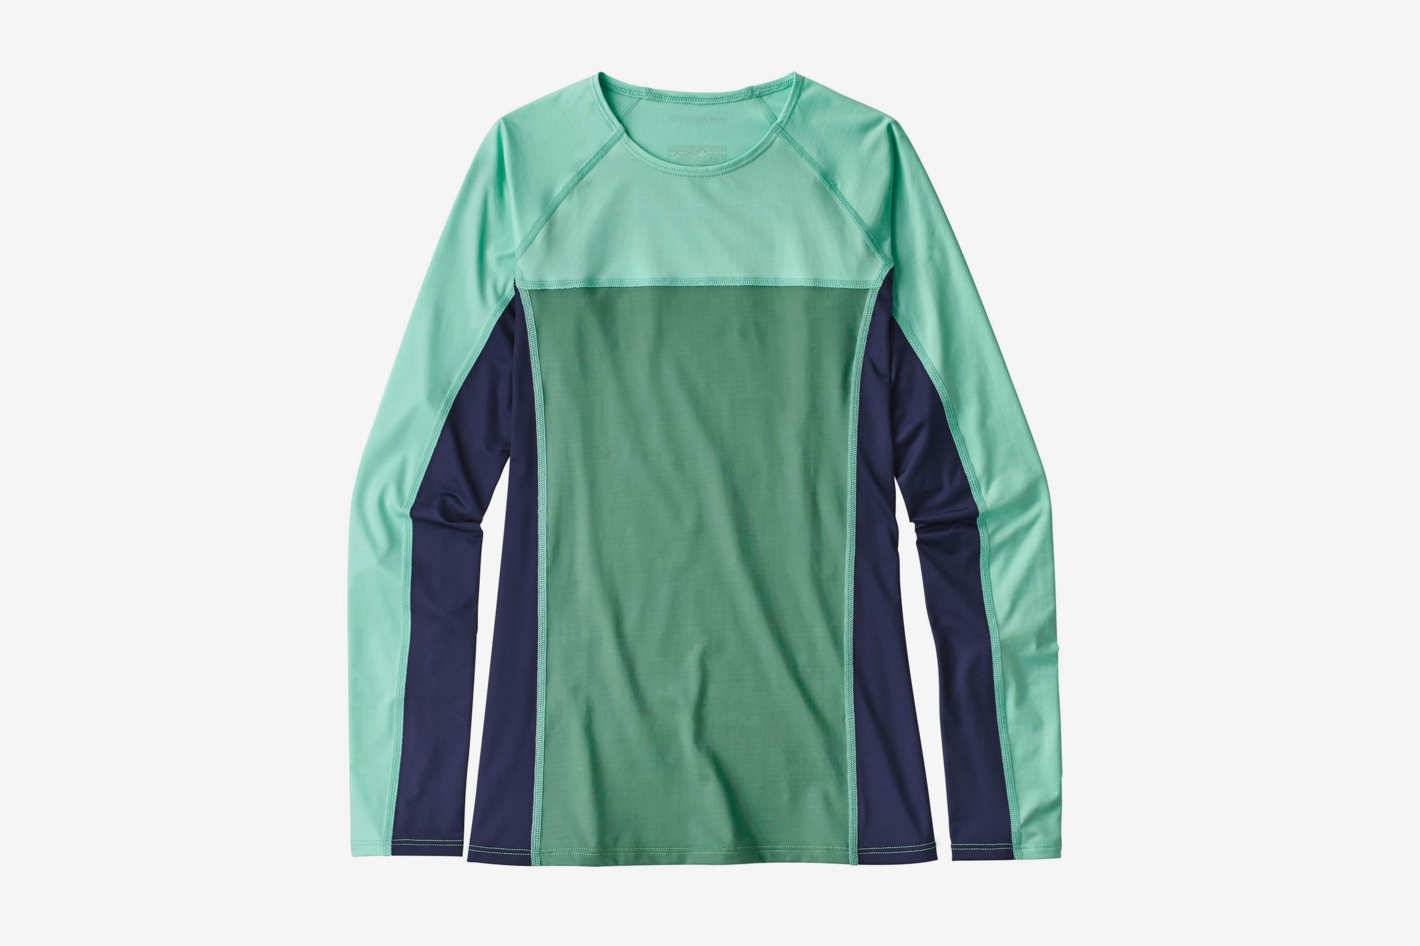 e6e28e5826 Best Wet Suits and Rash Guards Reviewed by Surfers 2018